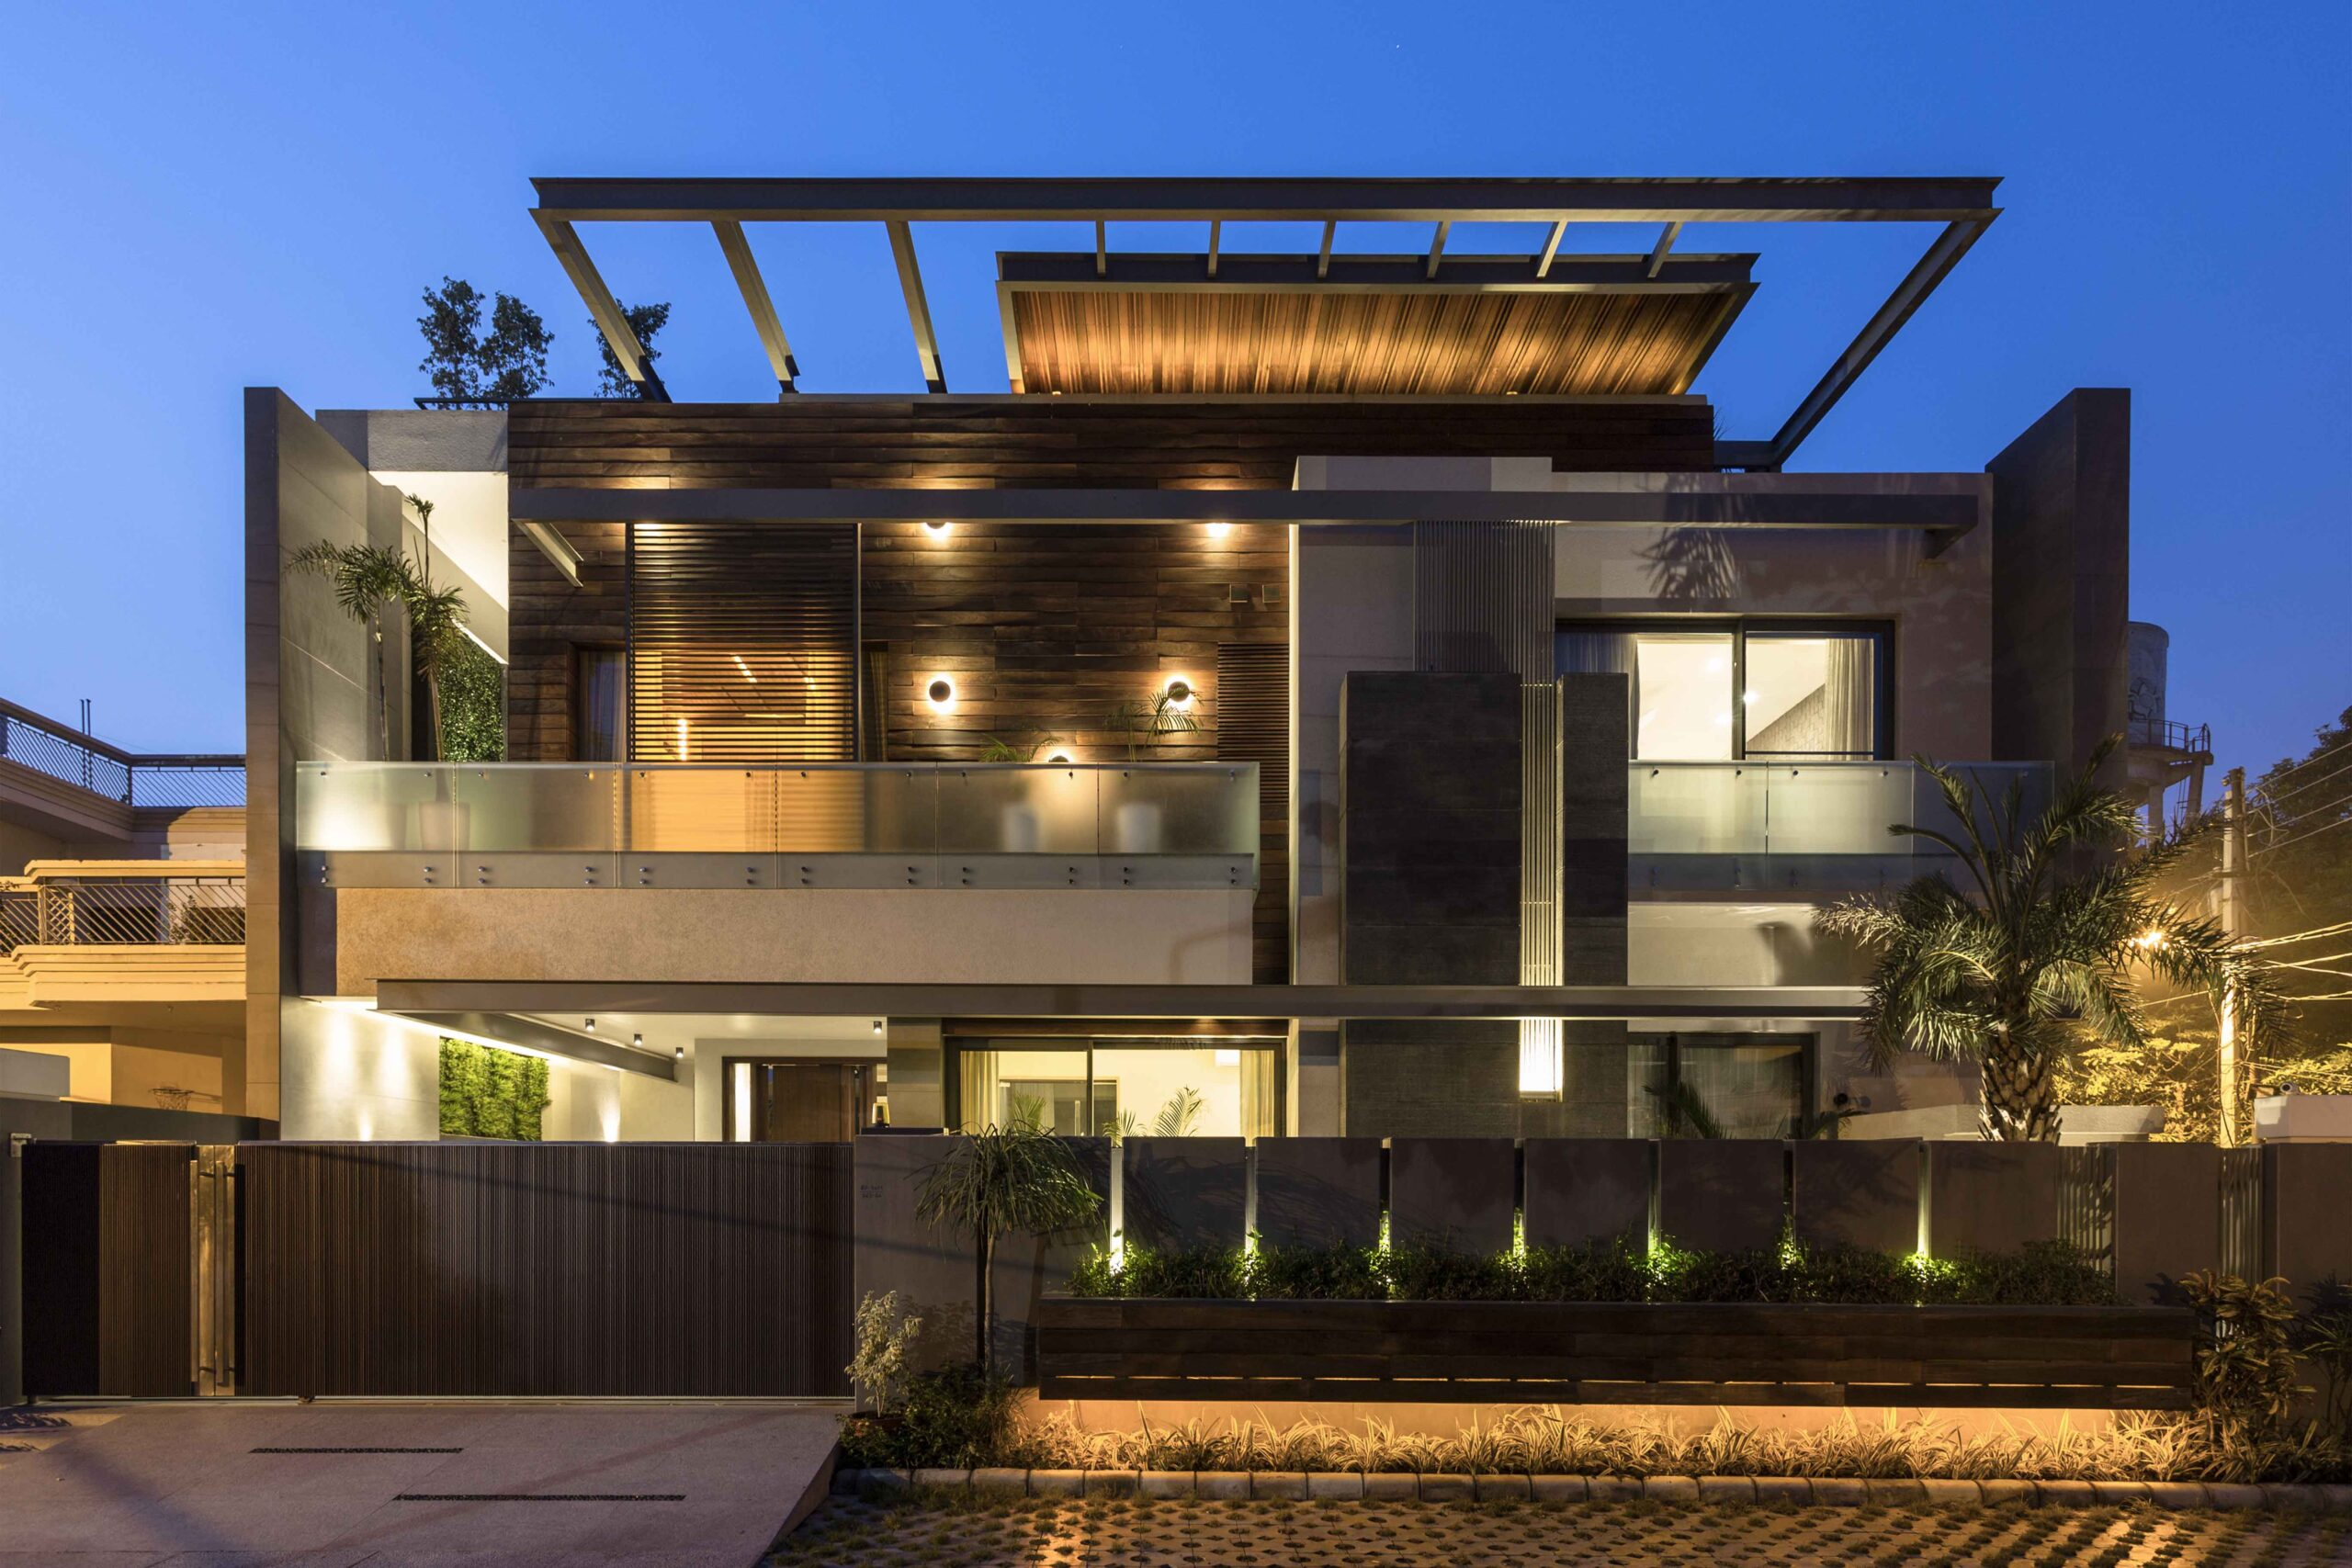 Accord House, at Ludhiana, Punjab, by Planet Design and Associates